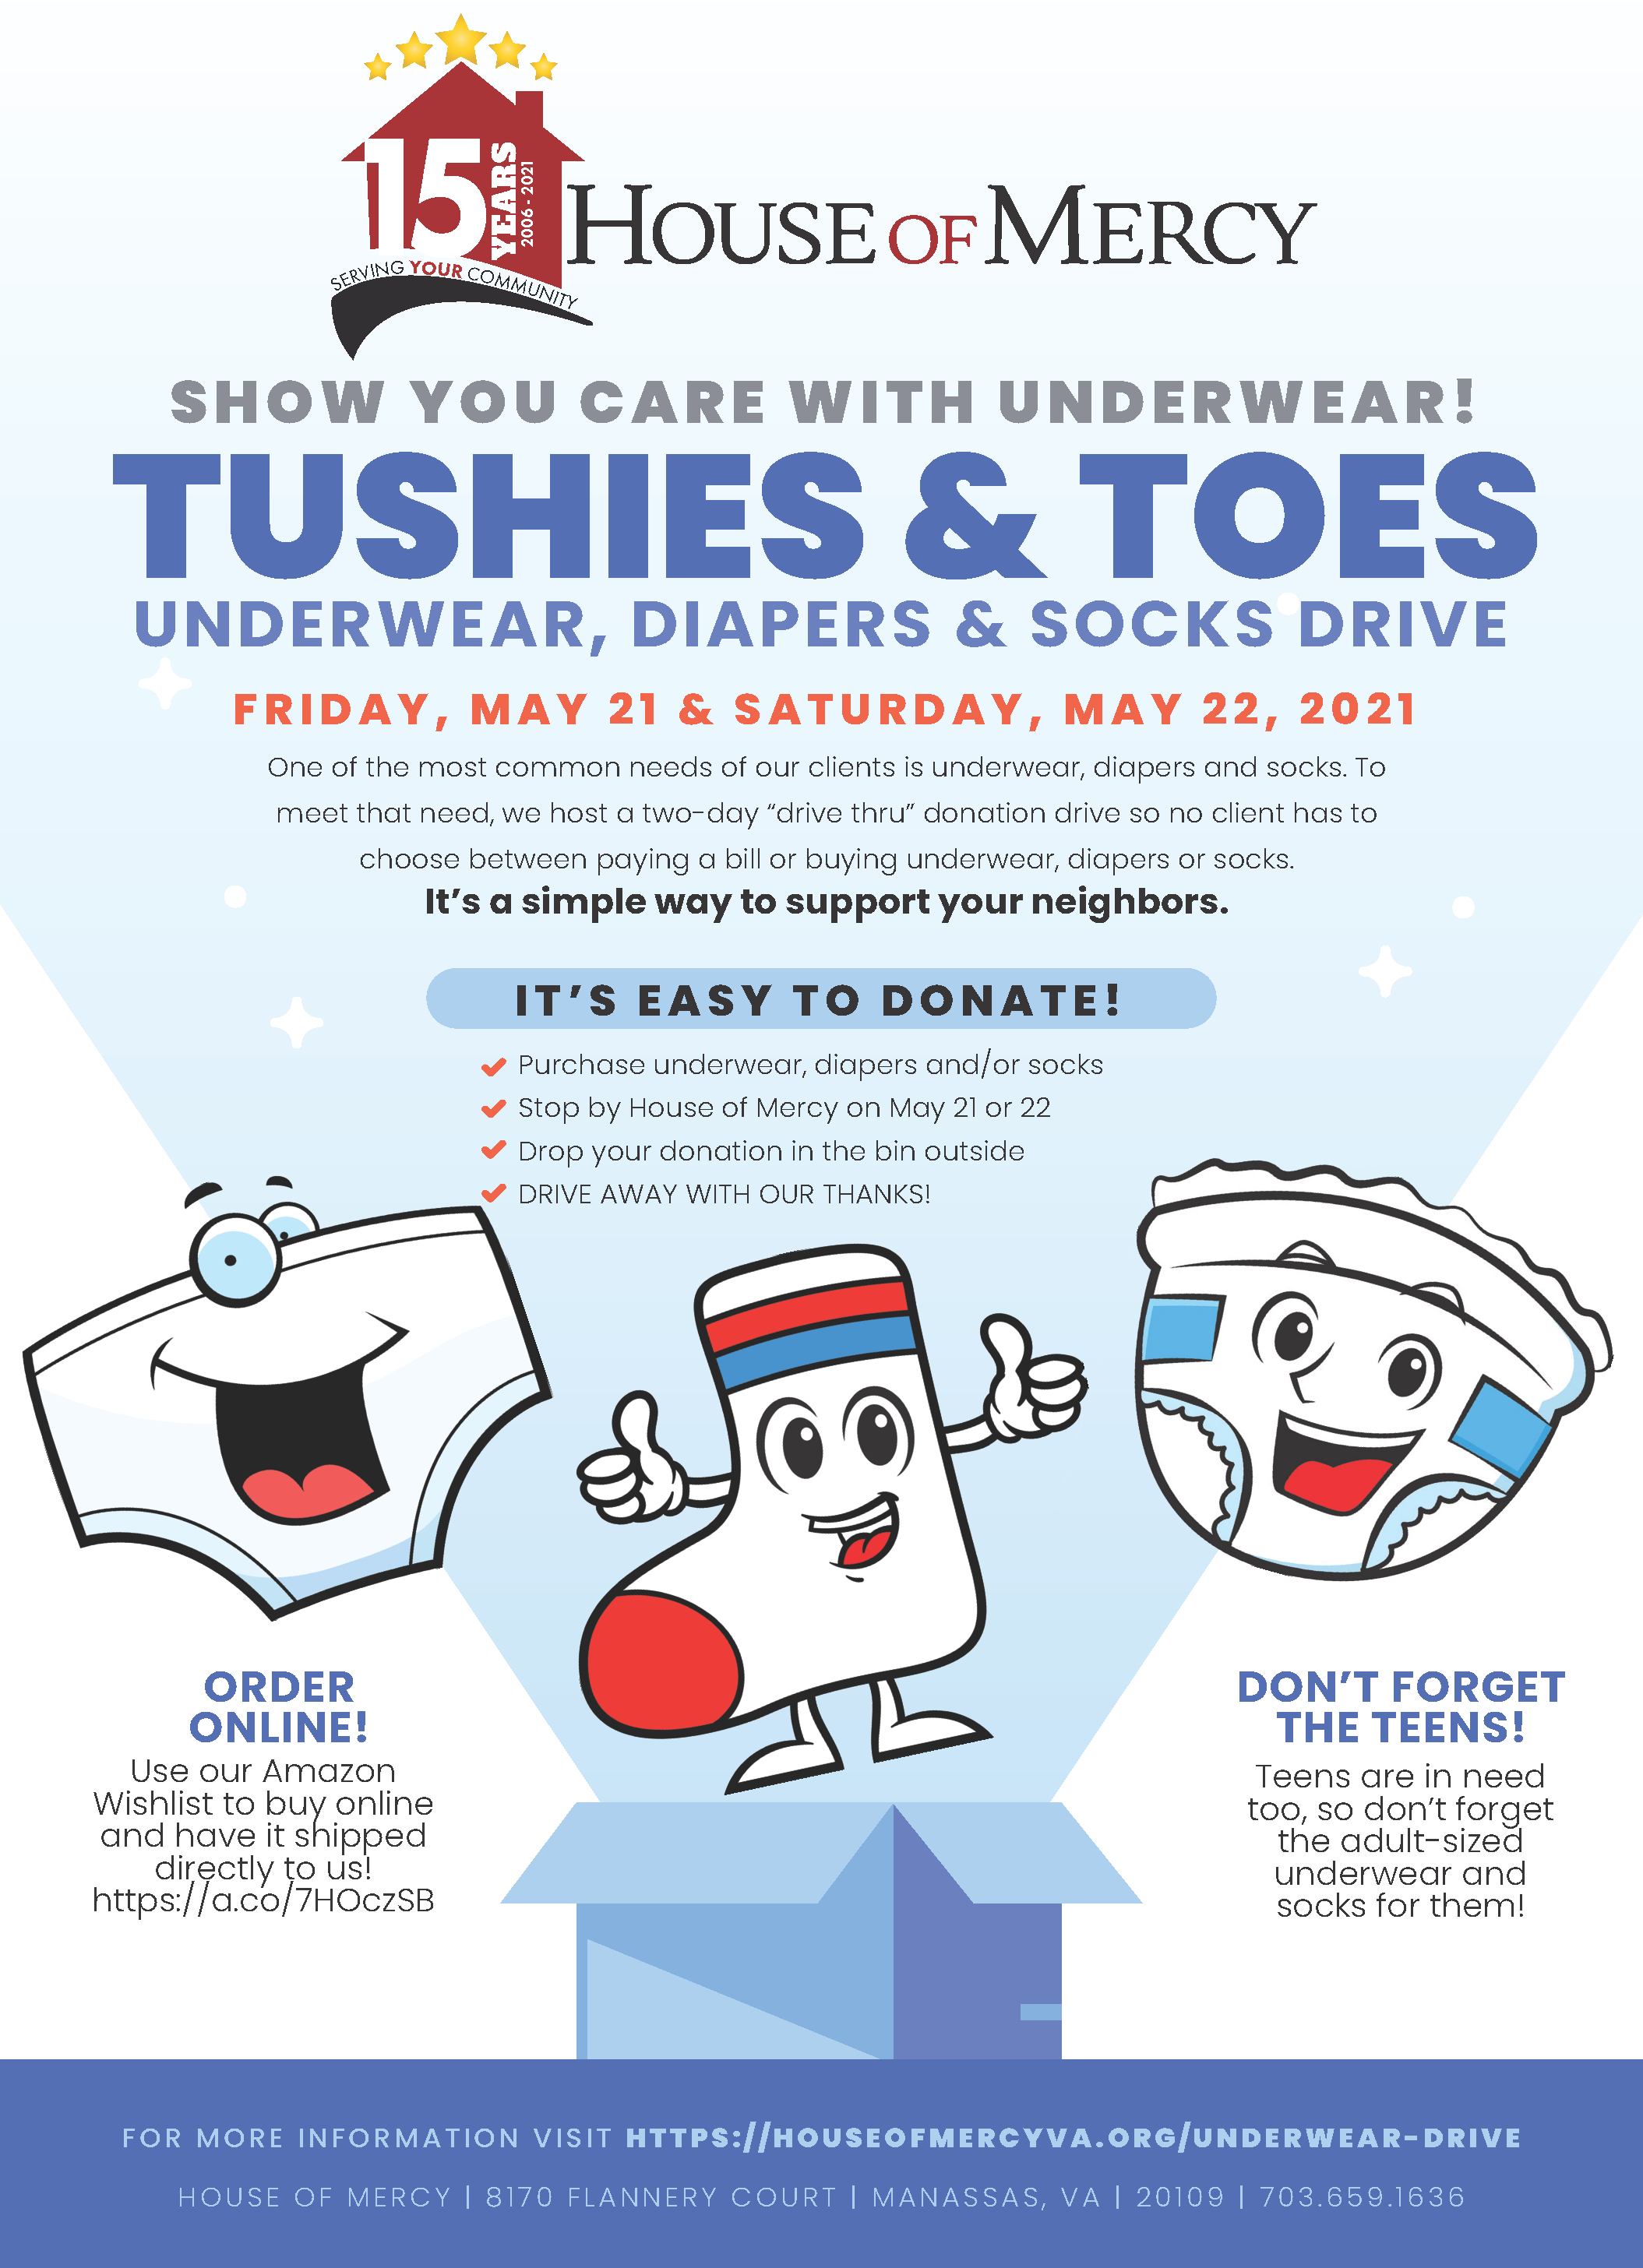 Tushies & Toes Underwear, Diapers and Socks Drive sponsored by House of Mercy